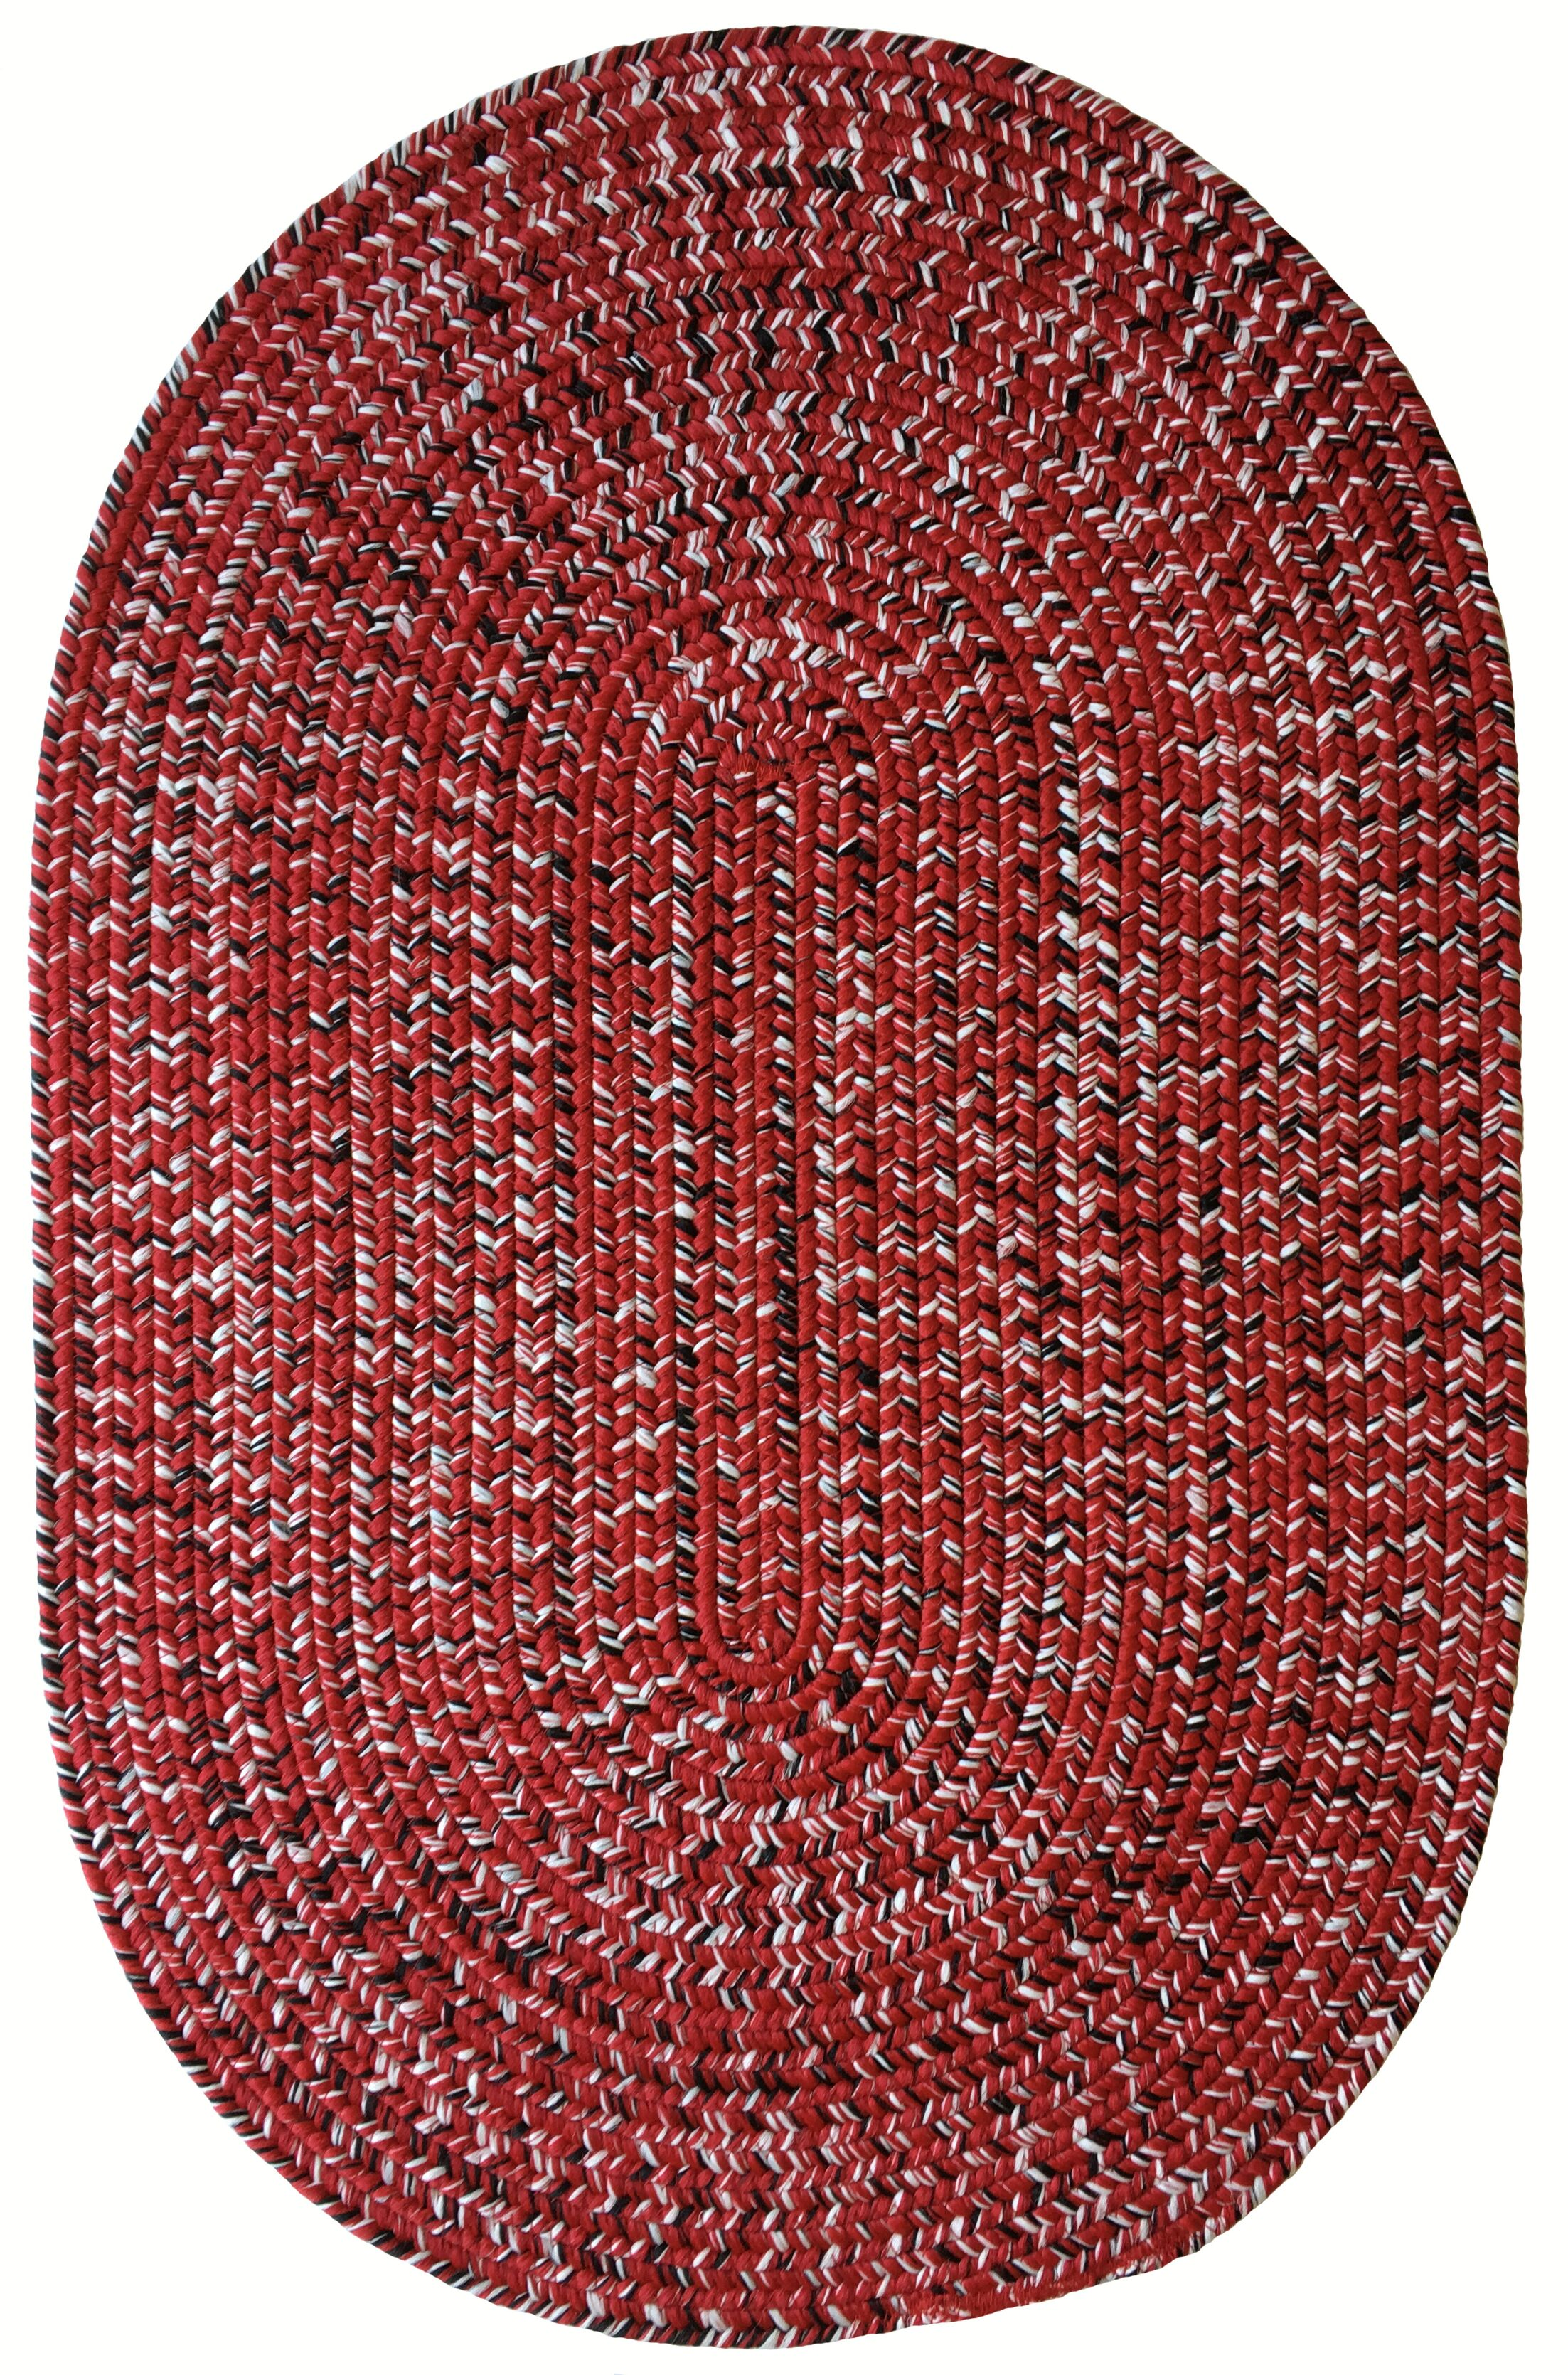 One-of-a-Kind Aukerman Hand-Braided Red/Black Indoor/Outdoor Area Rug Rug Size: Oval 11'4